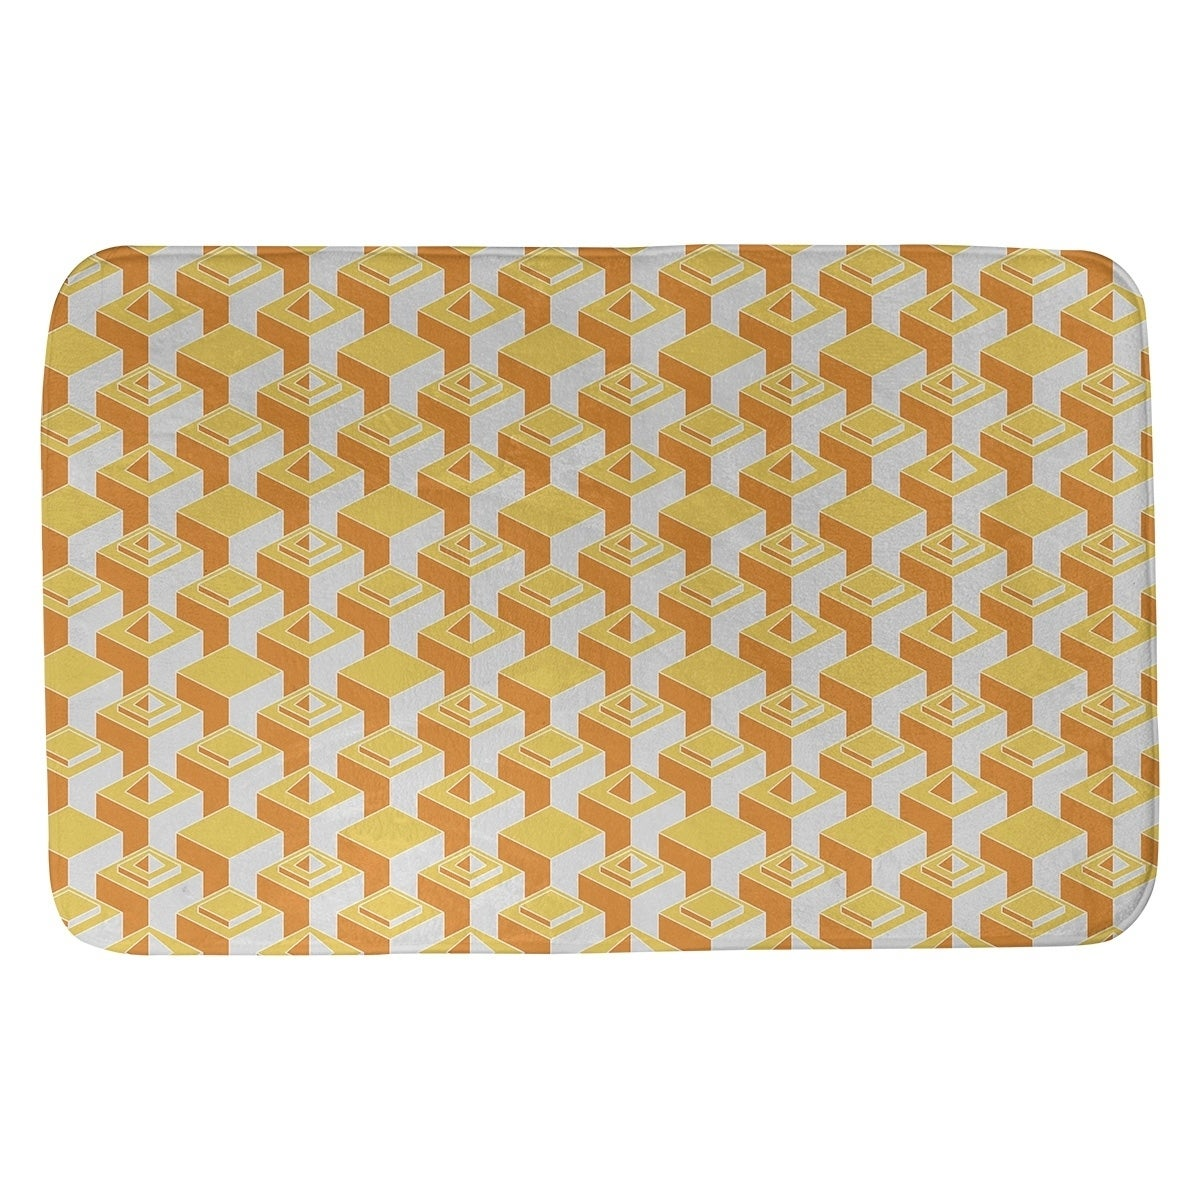 Two Color Light Skyscrapers Pattern Bath Mat Overstock 28426491